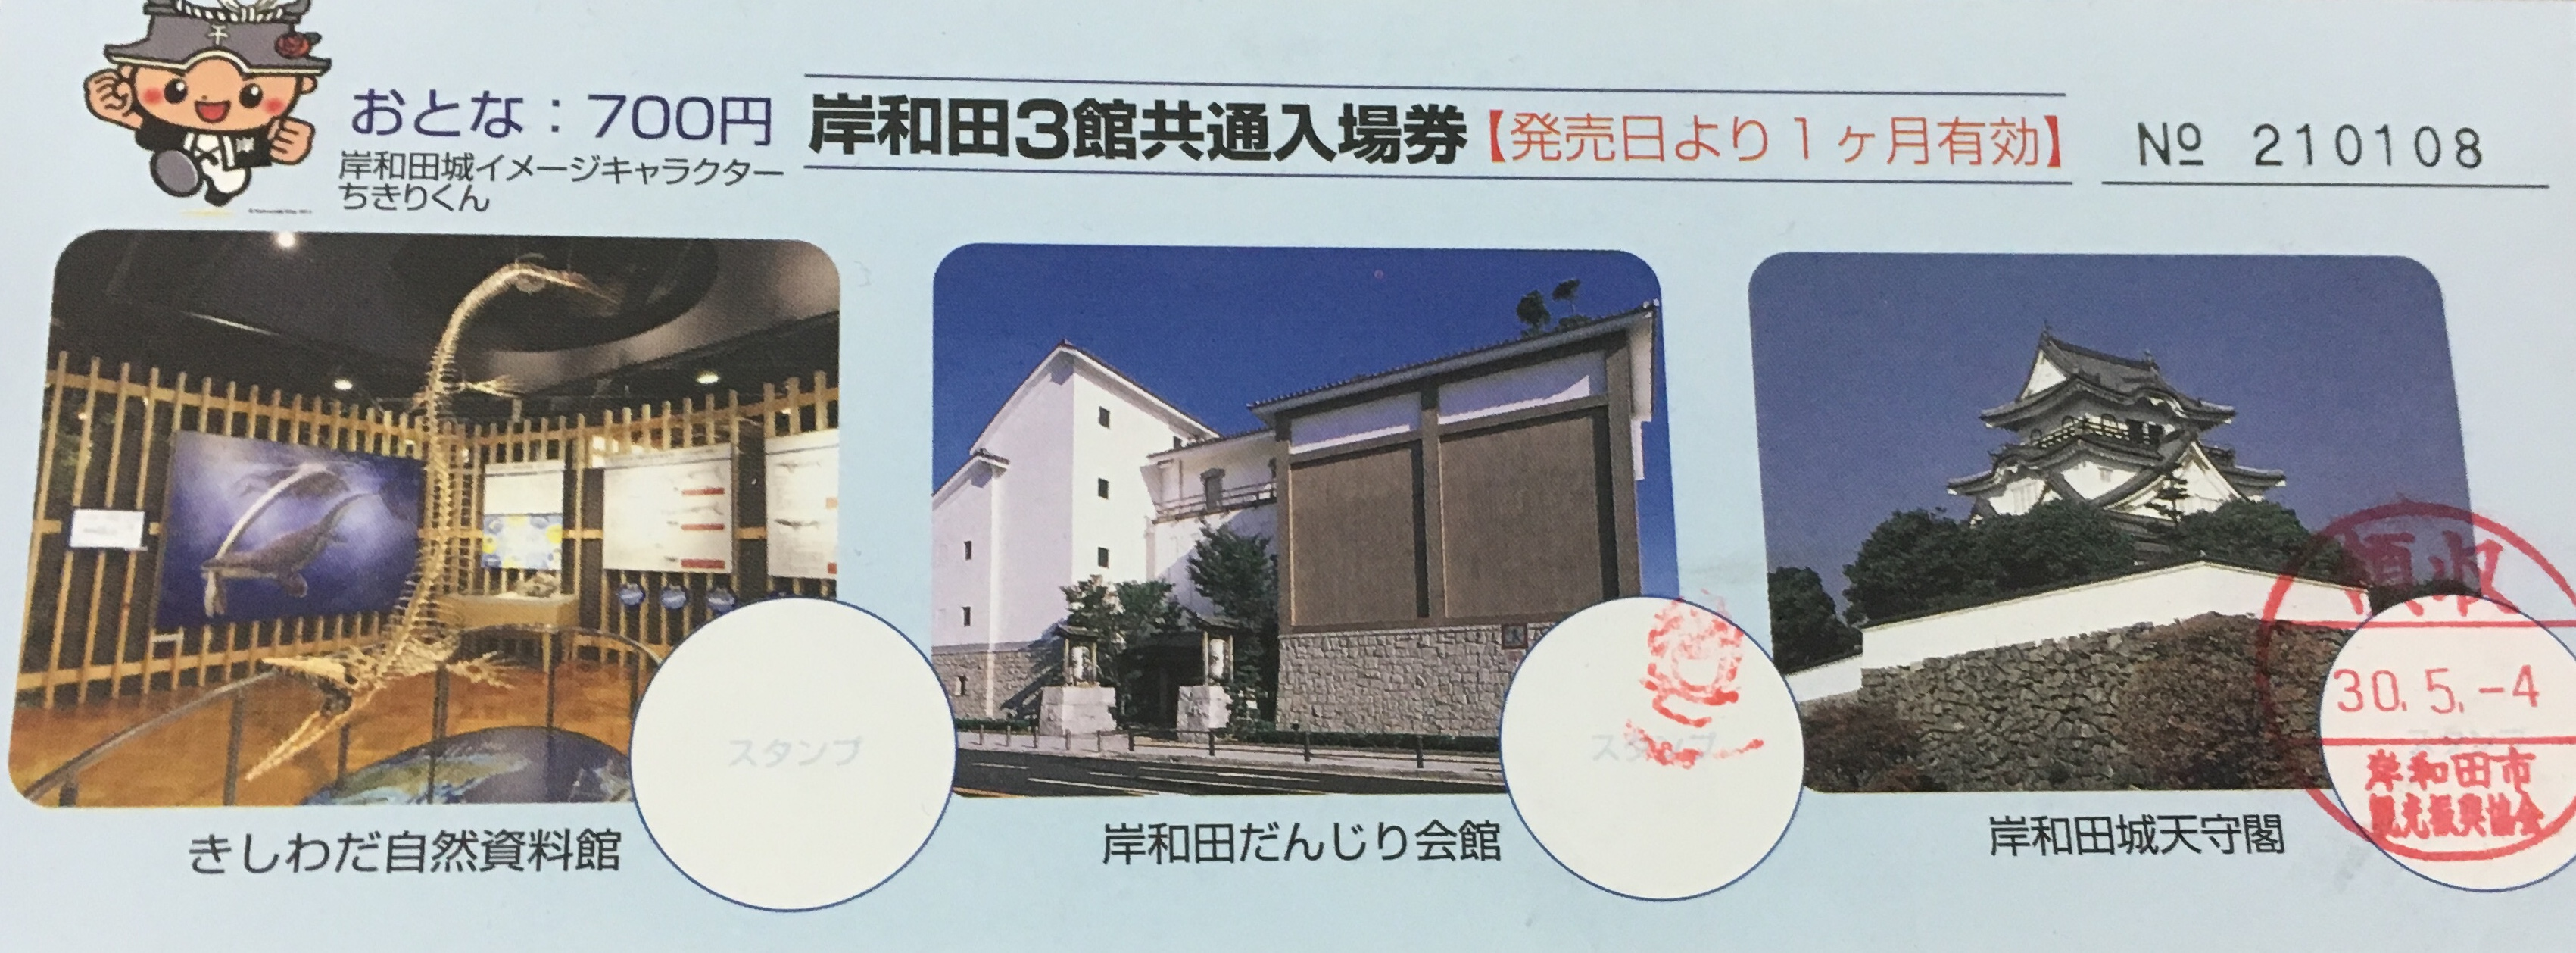 Combination ticket for kishiwada castle, the kishiwada danjiri museum and the kishiwada natural science museum